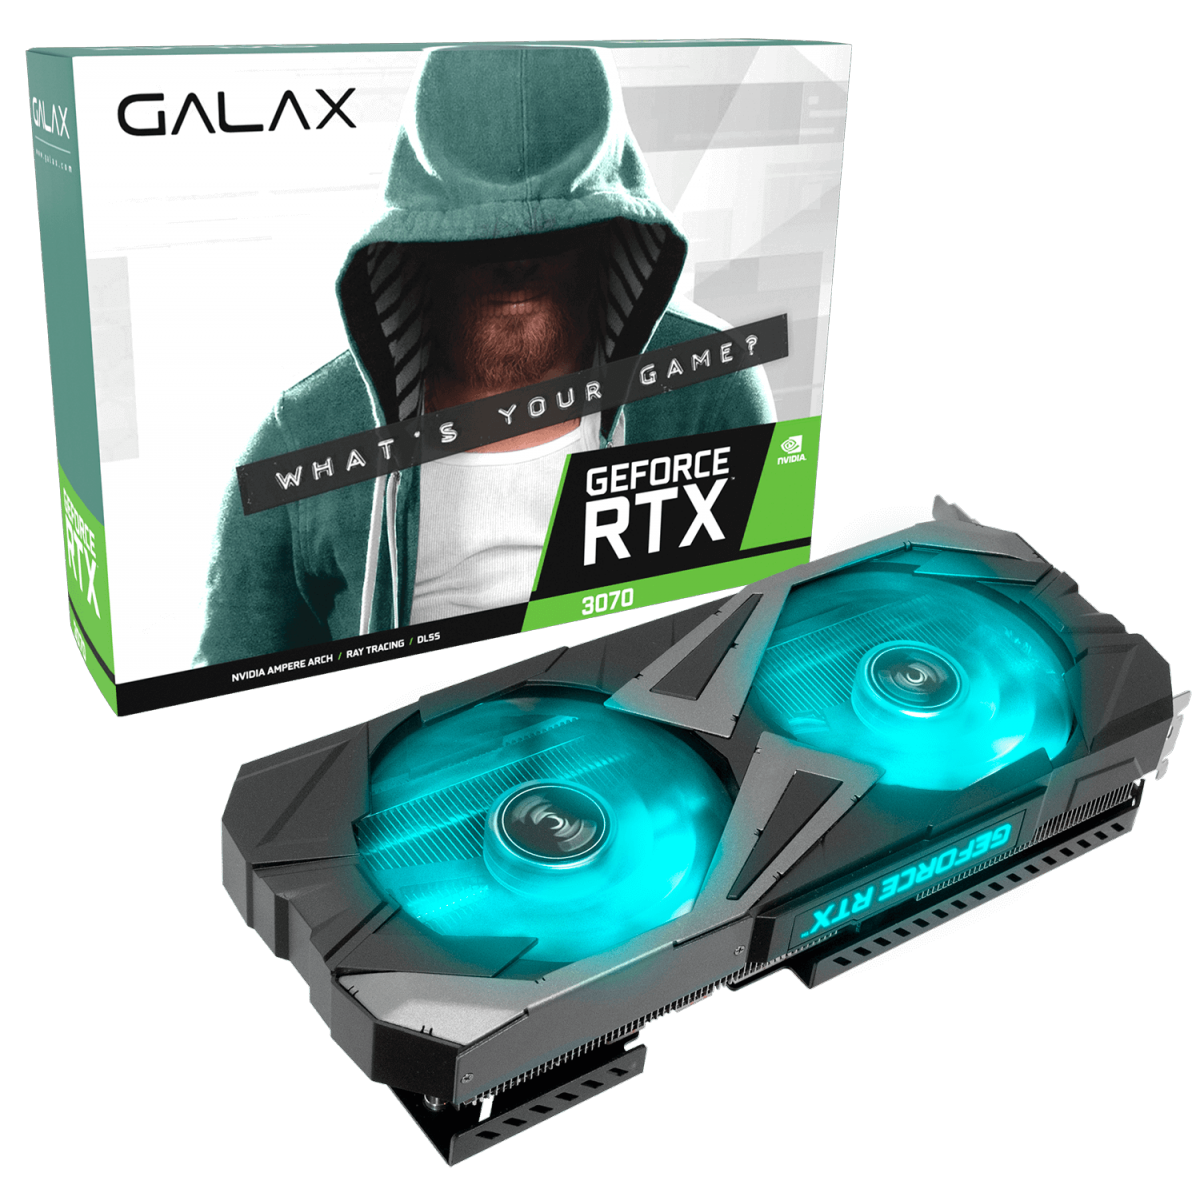 placa-de-video-galax-geforce-rtx-3070-ex-1-click-oc-8gb-gddr6-256bit_115853.png